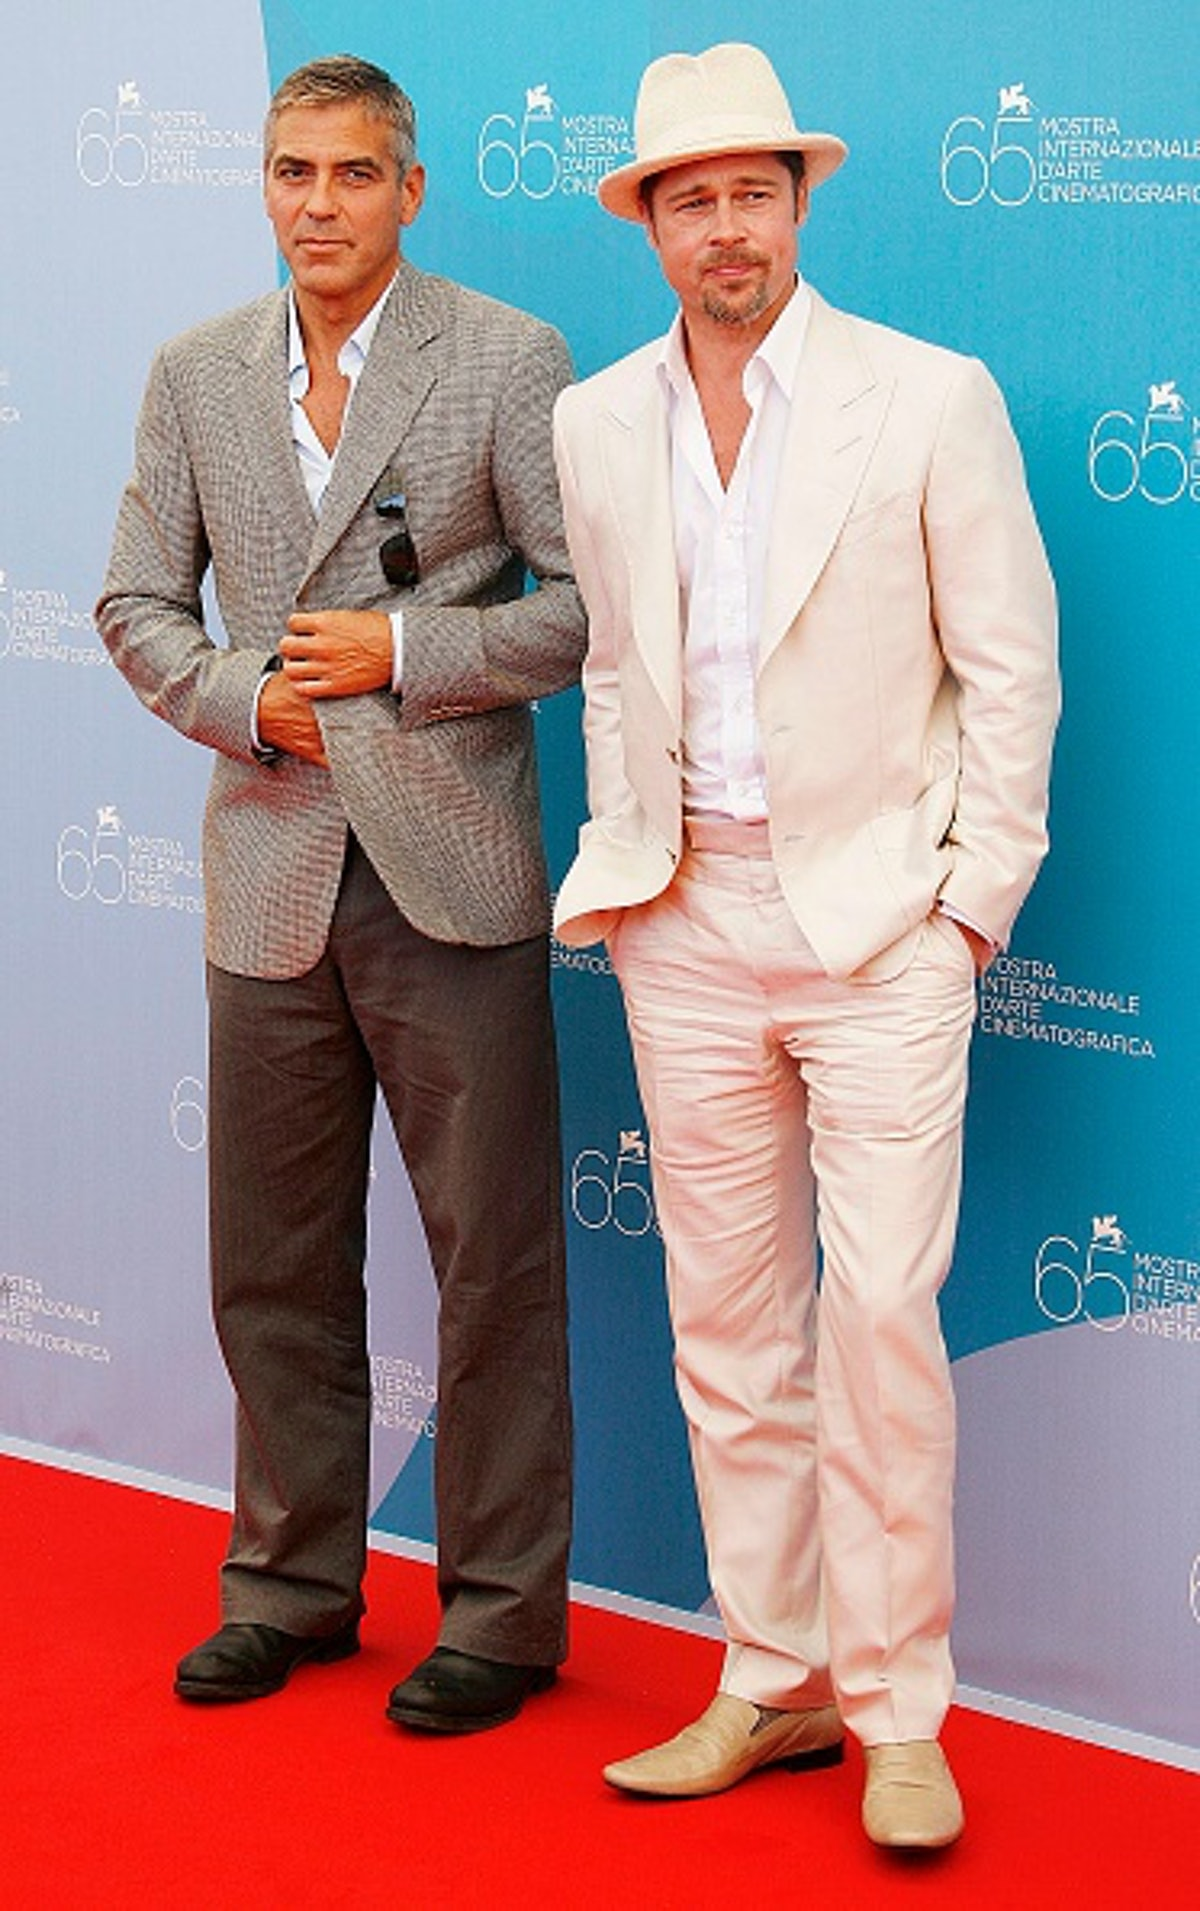 George wearing an Italian style gray suit and Brad Pitt in a cream suit